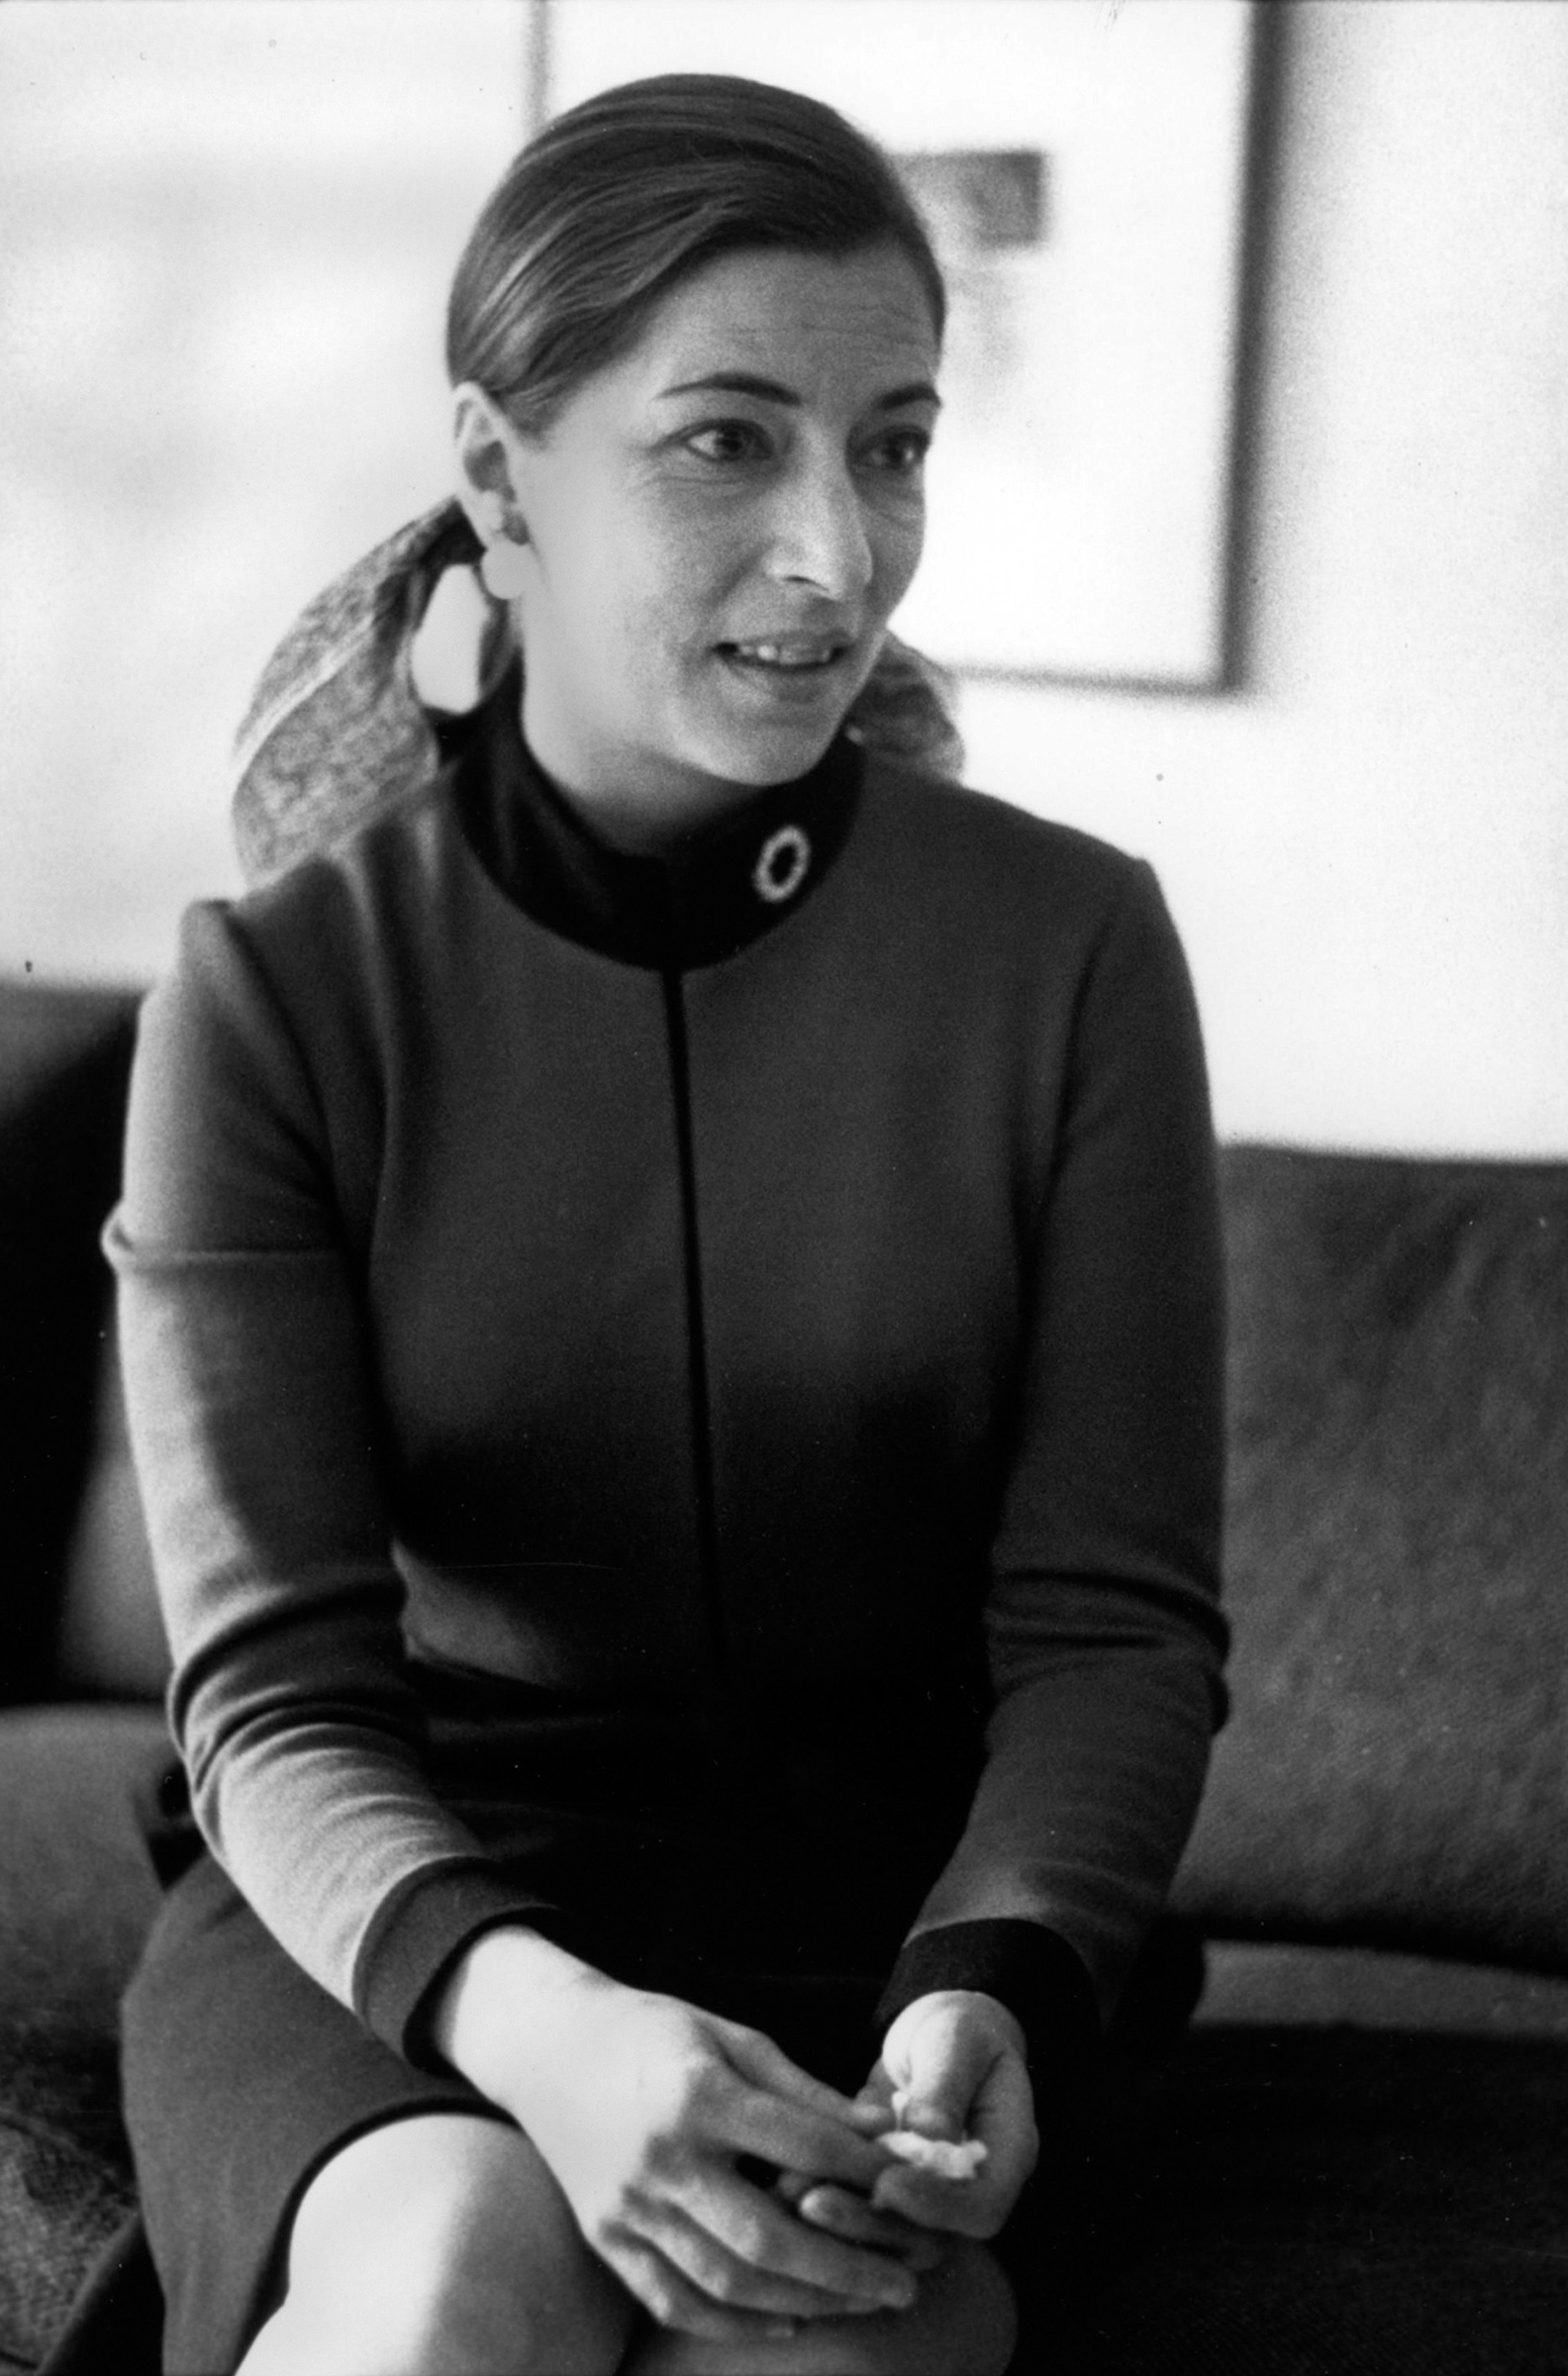 1972 Ruth Bader Ginsburg in New York, when she was named a professor at Columbia Law School.